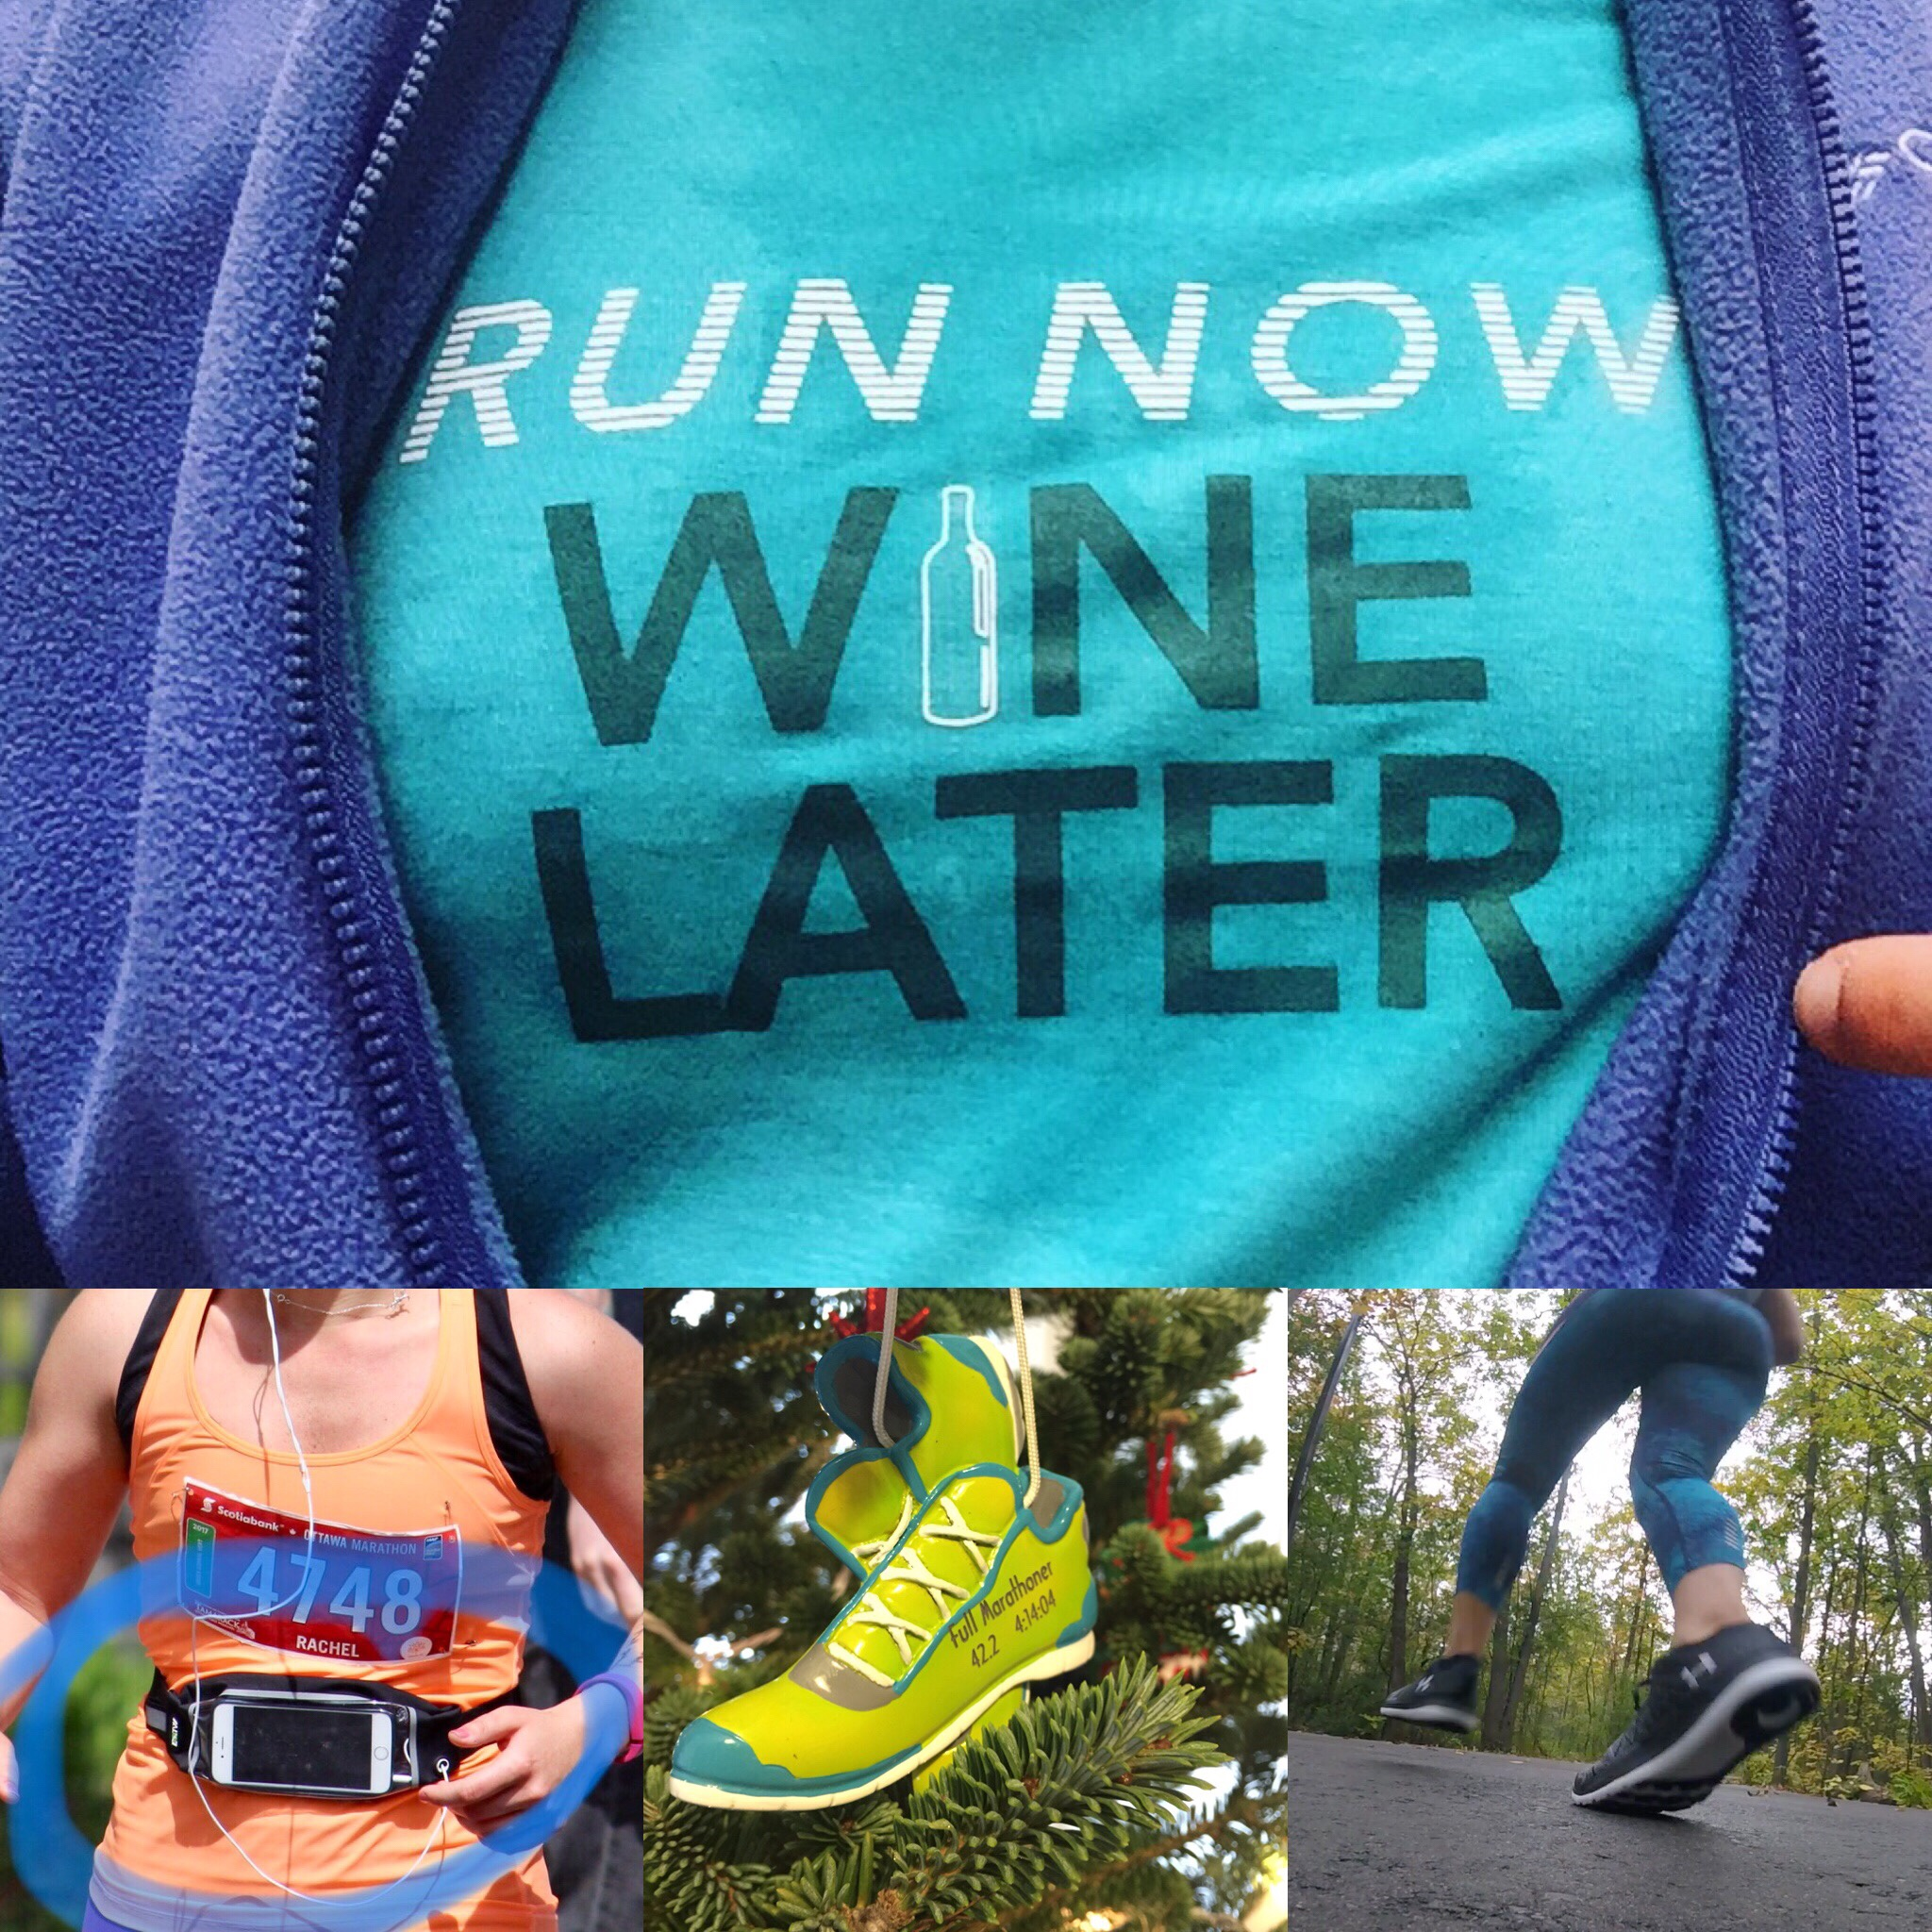 7 Gifts for the Runner in Your Life